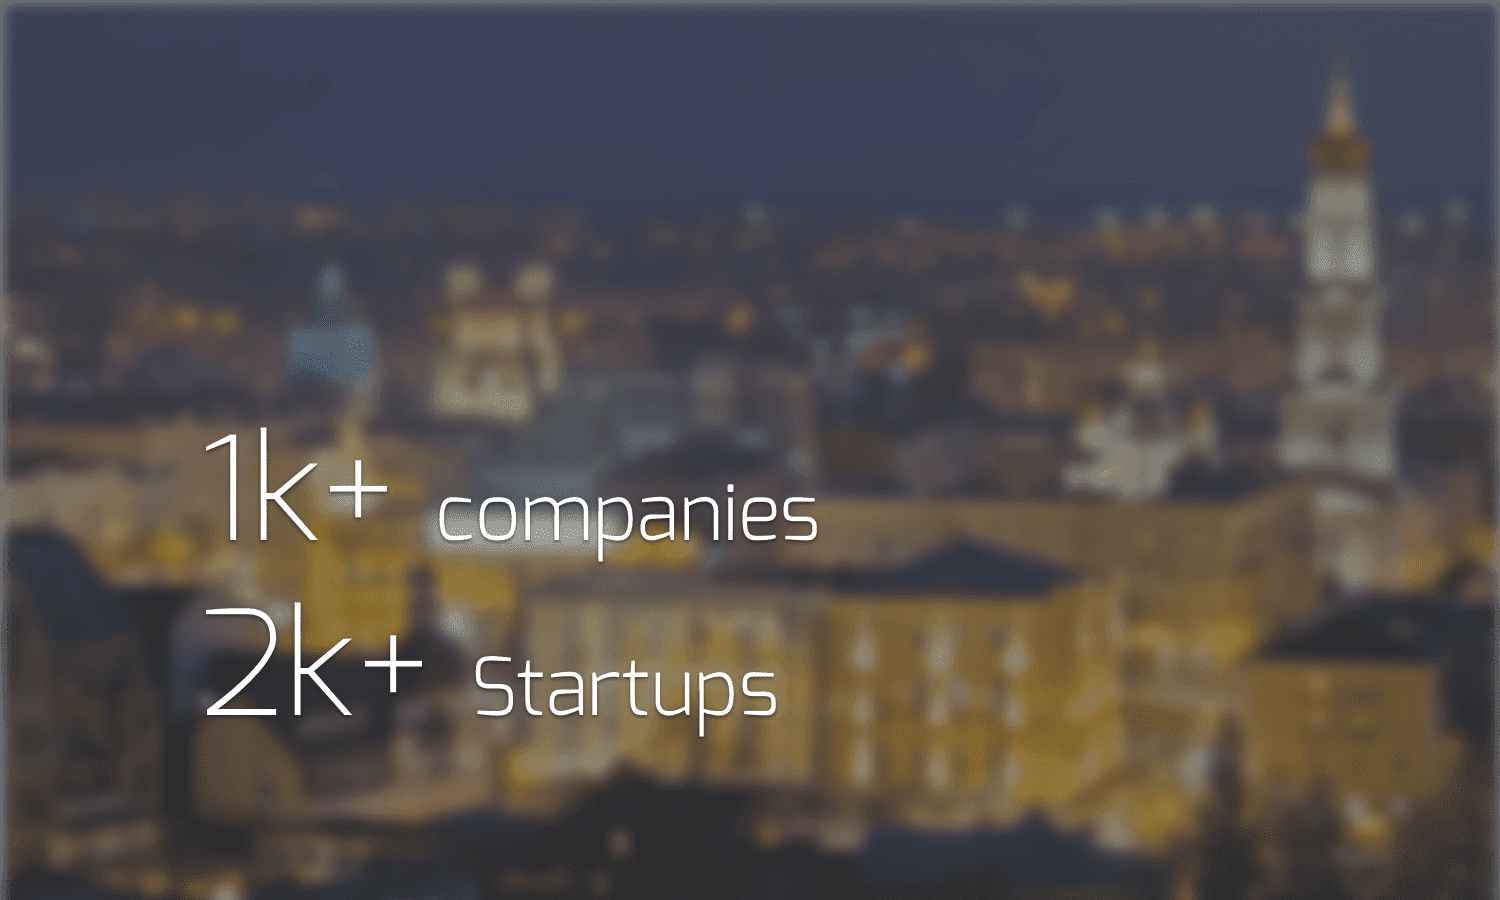 IT companies and startups